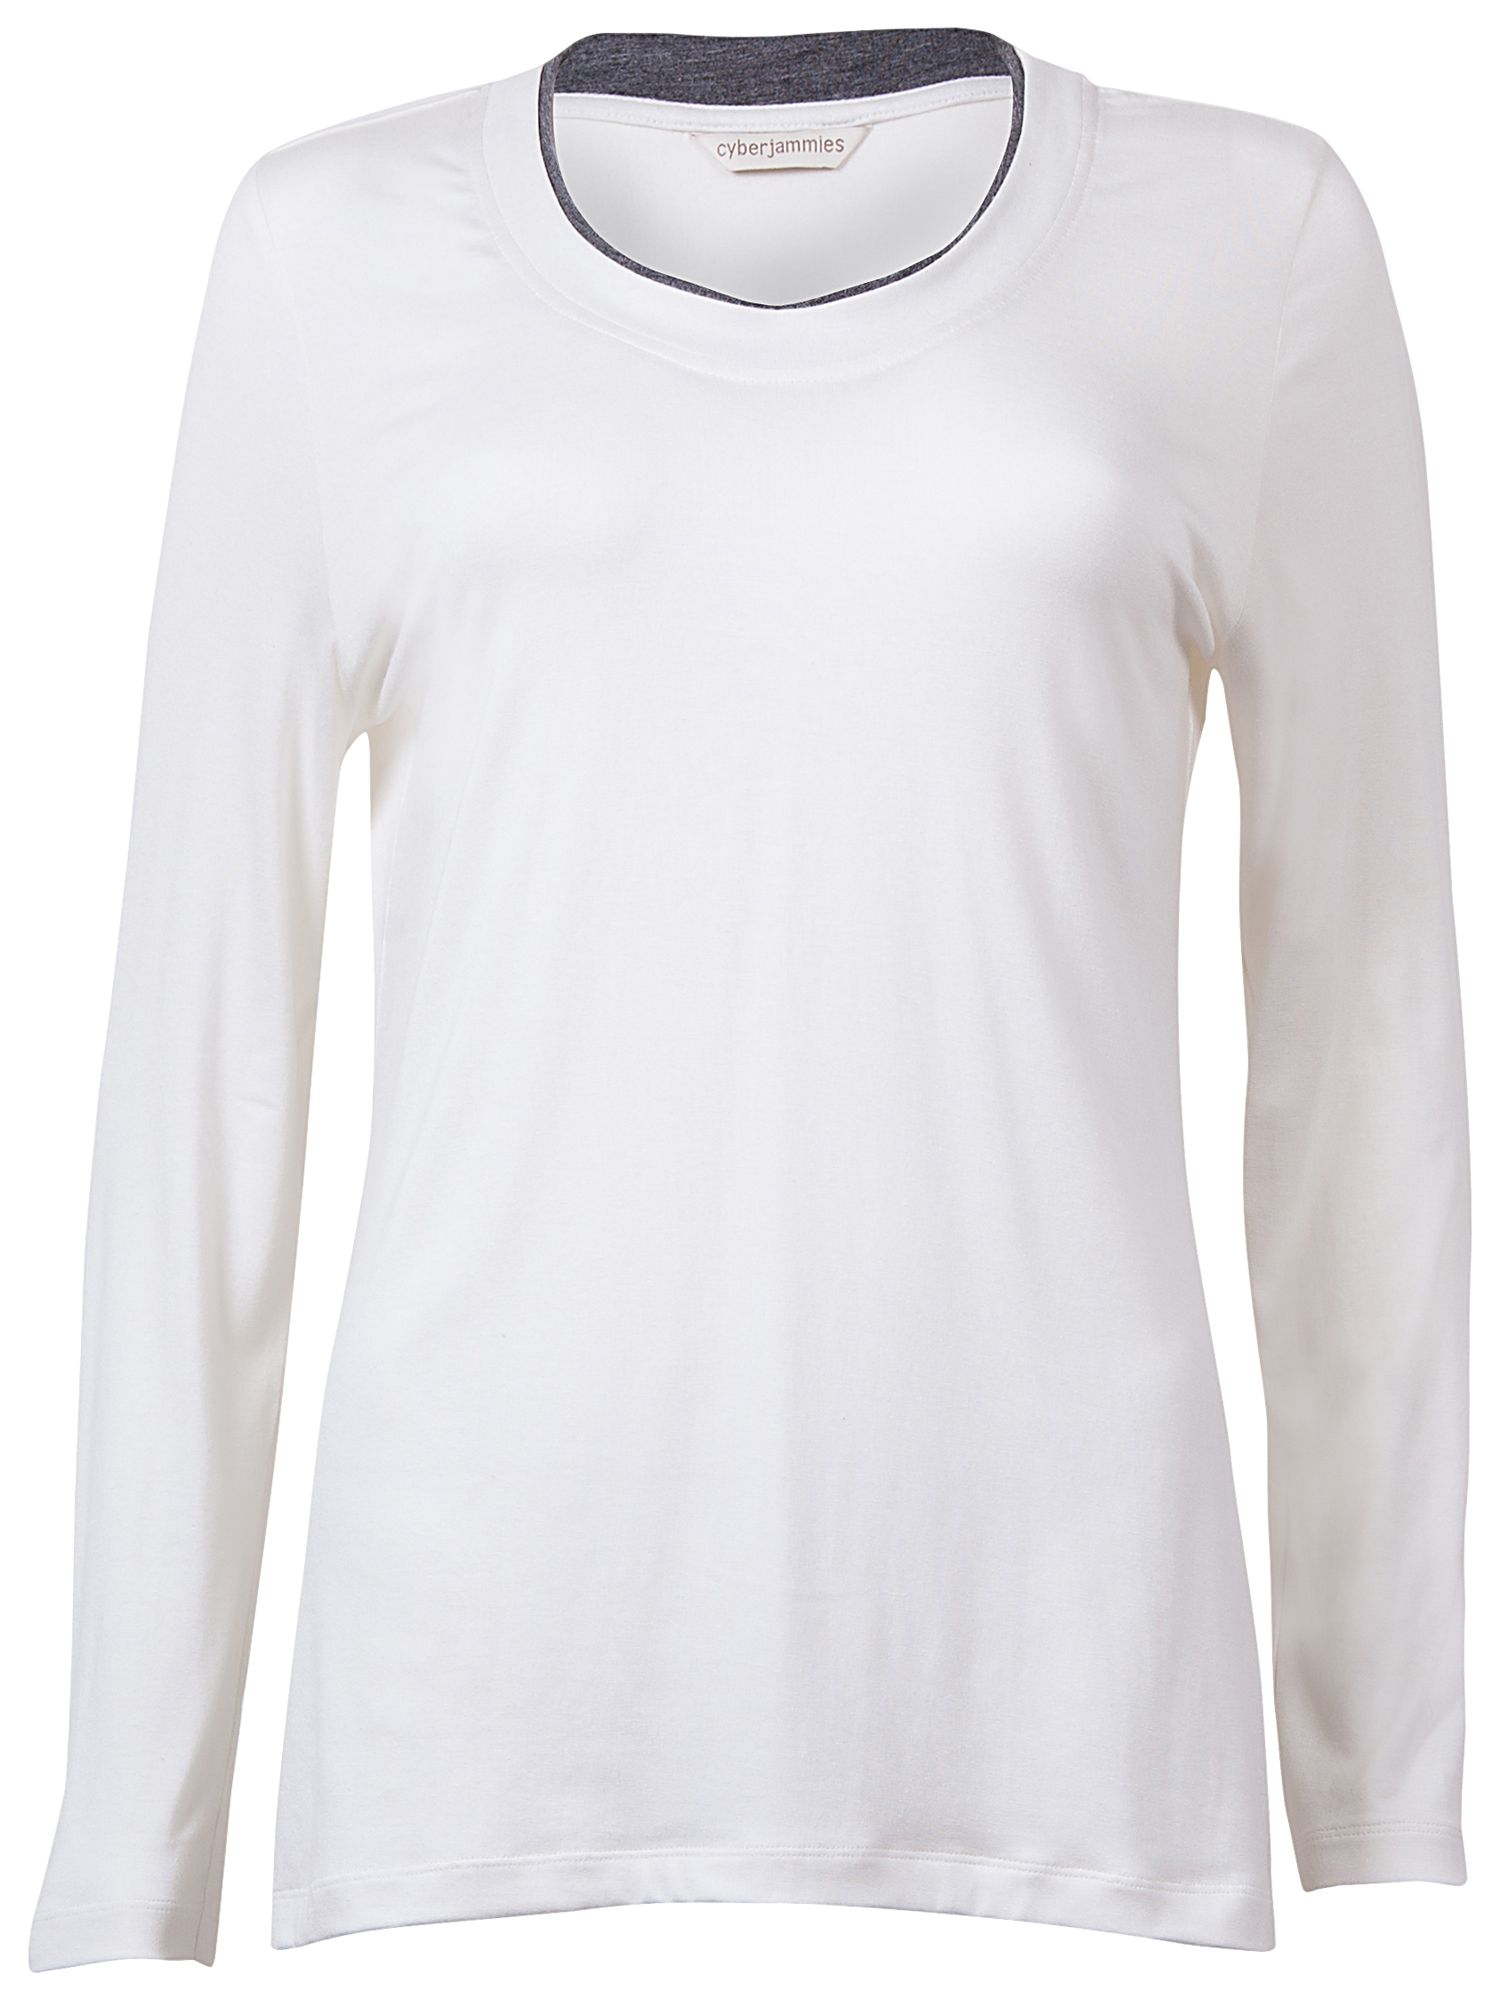 Cyberjammies Long Sleeve Jersey Top, Cream